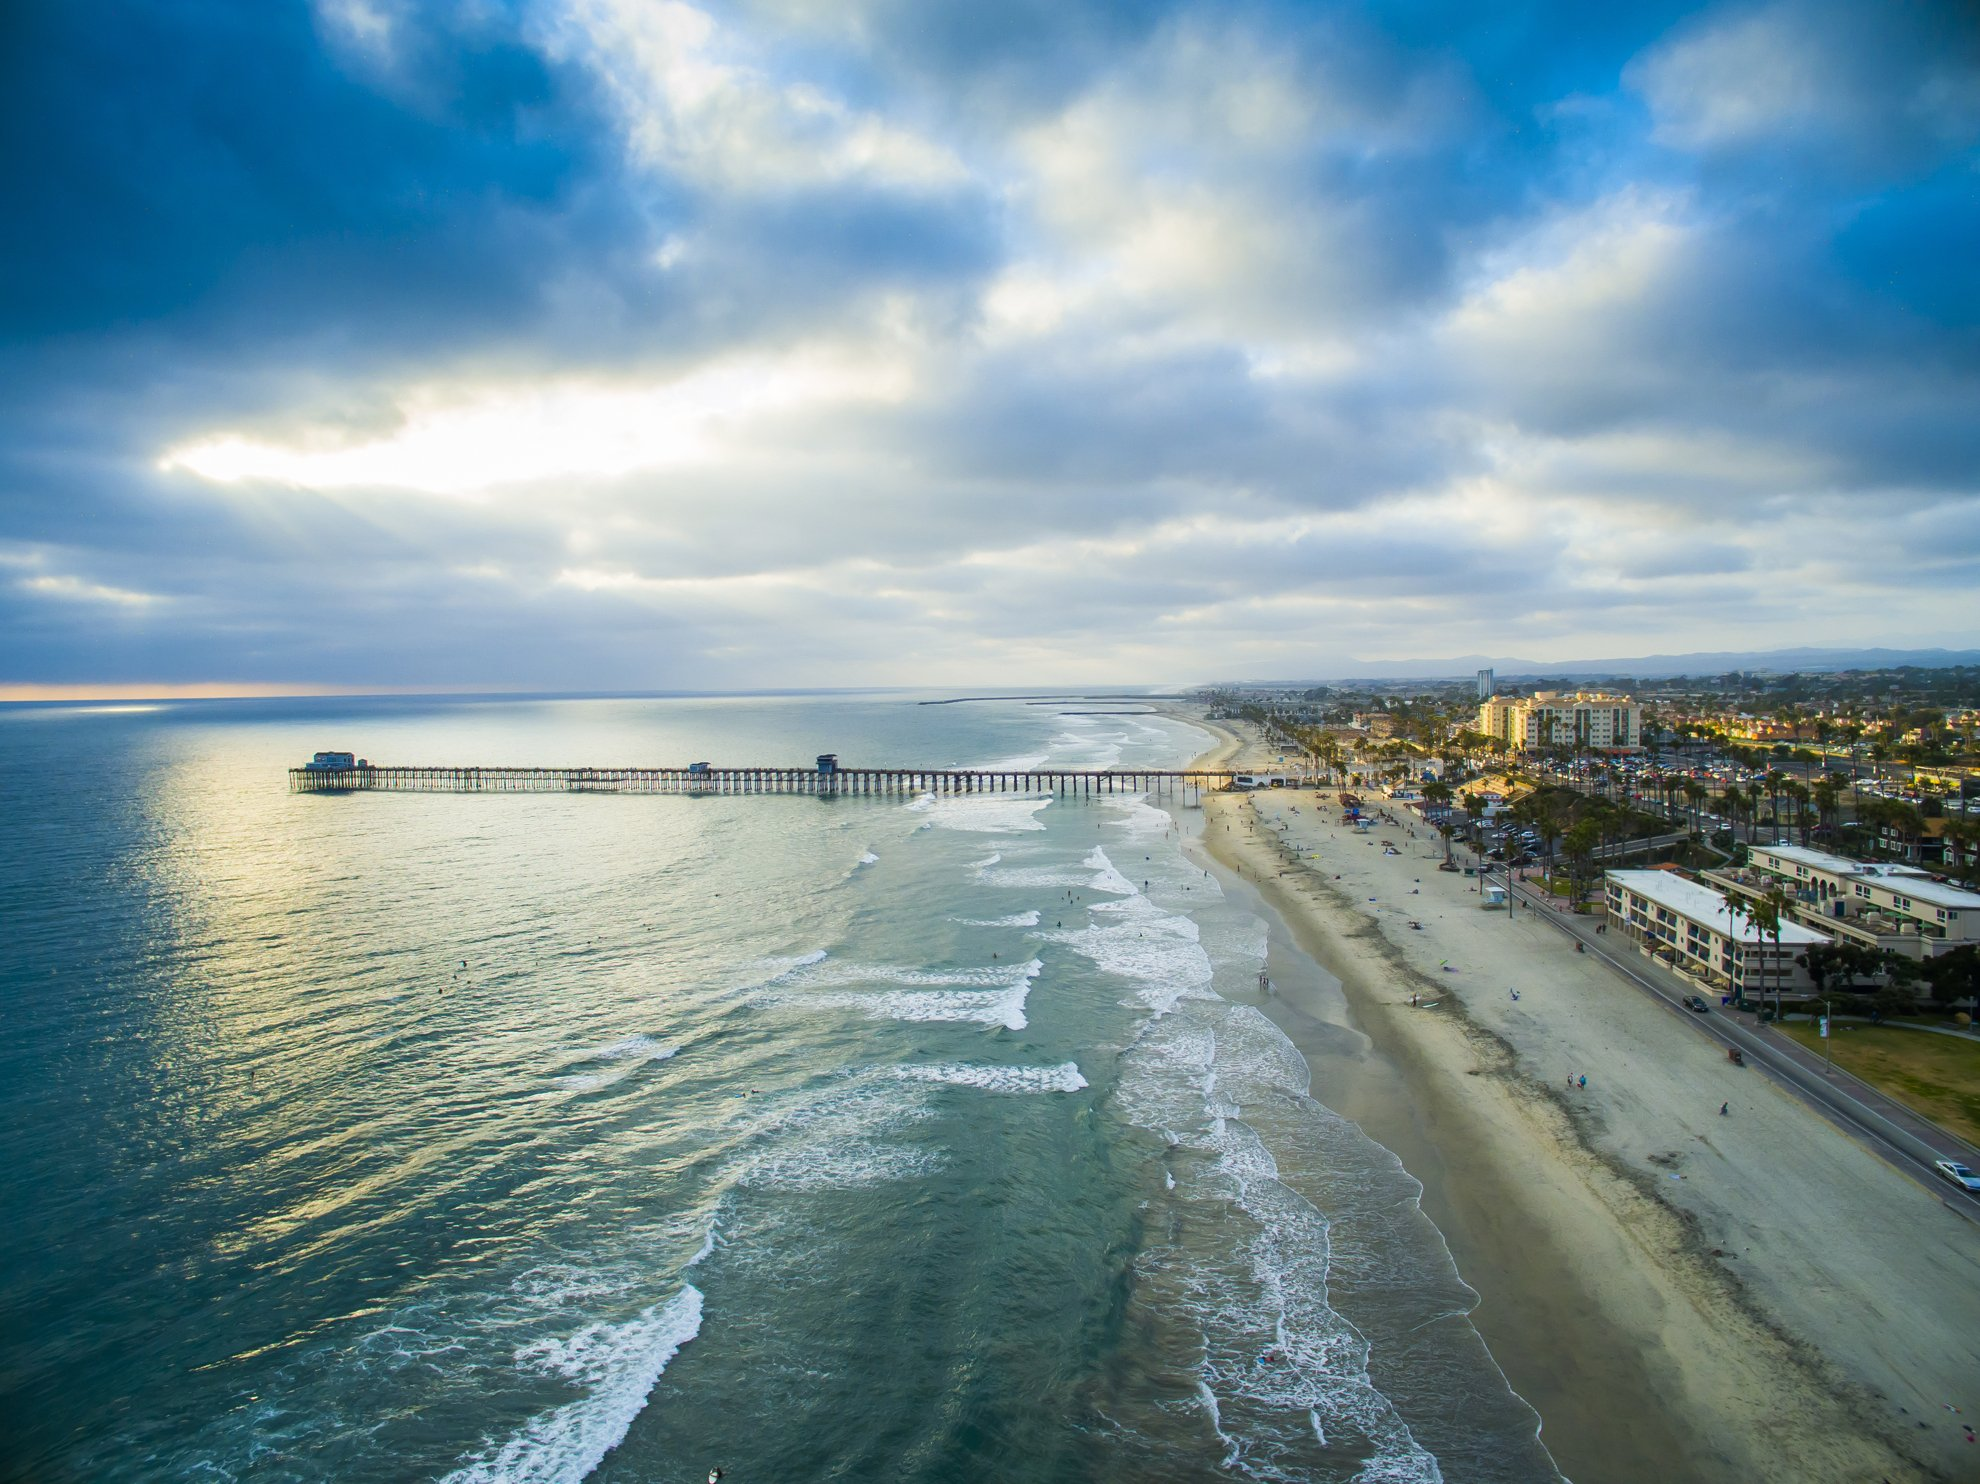 Aerial Drone Photography Of Oceanside California At Sunset